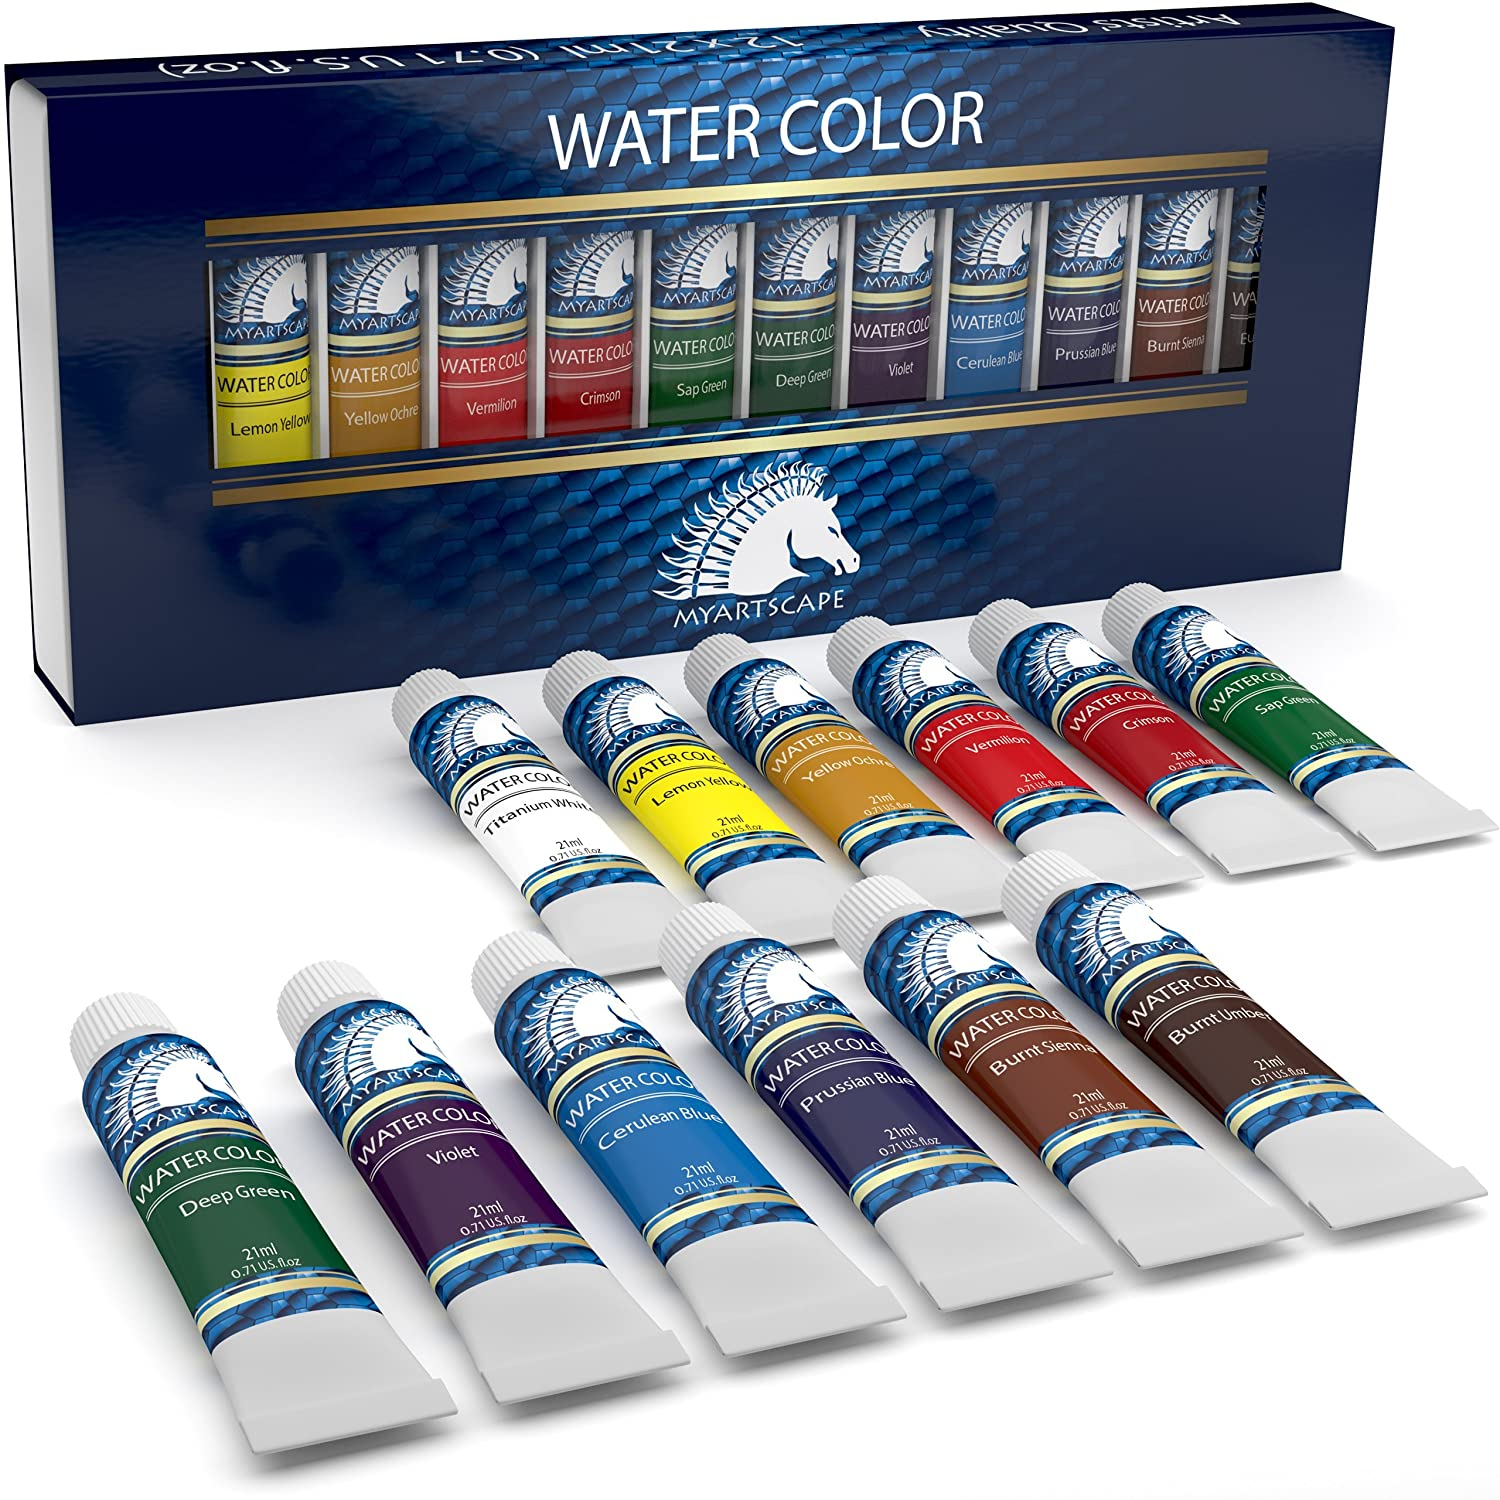 Watercolor Paint Set - Artist Quality Paints - 12 x 21ml Vibrant Colors - Rich Pigments - Professional Supplies by MyArtscape (Set of 12 x 21ml)